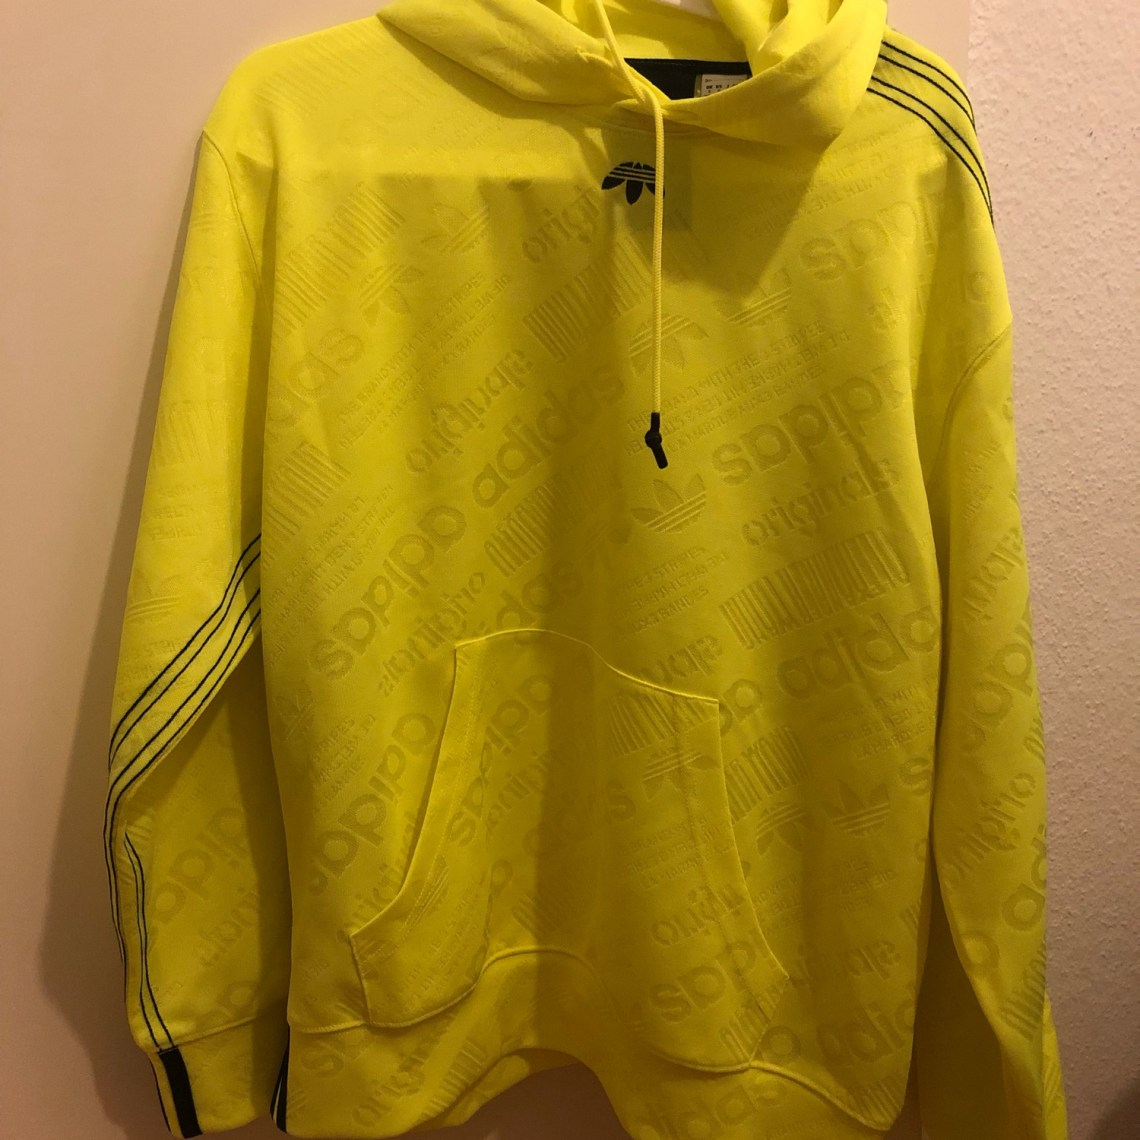 Adidas Originals Sweatshirt 7